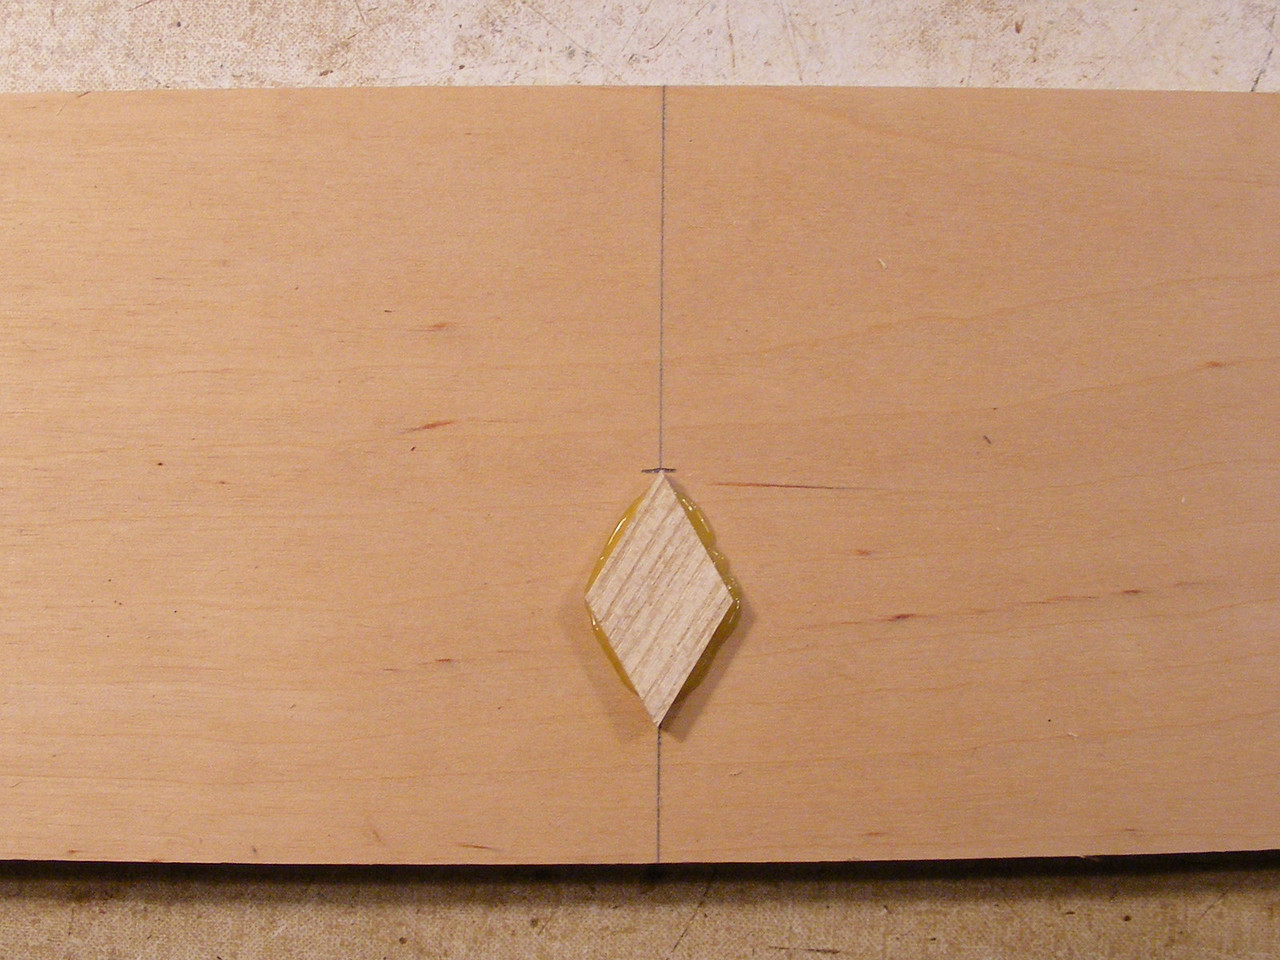 "7 - Making a Tumbling Block Cribbage Board  I take a blank piece of Baltic Birch plywood, 5/8th to ¾"" thick and mark the center. As you look at this diamond that I have glued on, you will see that the grain of the wood goes up and out of the diamond at the top right and the bottom left. It will be the same on each diamond that I glue on the Cribbage Board. If you turn it so that the point is up, on each type of wood, the grain will go out of the diamond to the right, at the top. To me this is more uniform and more pleasing to the eye when the whole thing is done.  I use hot glue to glue the diamonds and triangles on to the base. I use ""Super Amber"" Hot glue sticks from Supergrit (or Red Hill Corporation) at;  <a href=""http://www.supergrit.com/products/products_glue-hotmelt.asp"" rel=""nofollow"">www.supergrit.com/products/products_glue-hotmelt.asp</a>    The glue that squishes out I trim off with a chisel if it cools and hardens up before I can put another diamond in next to it."